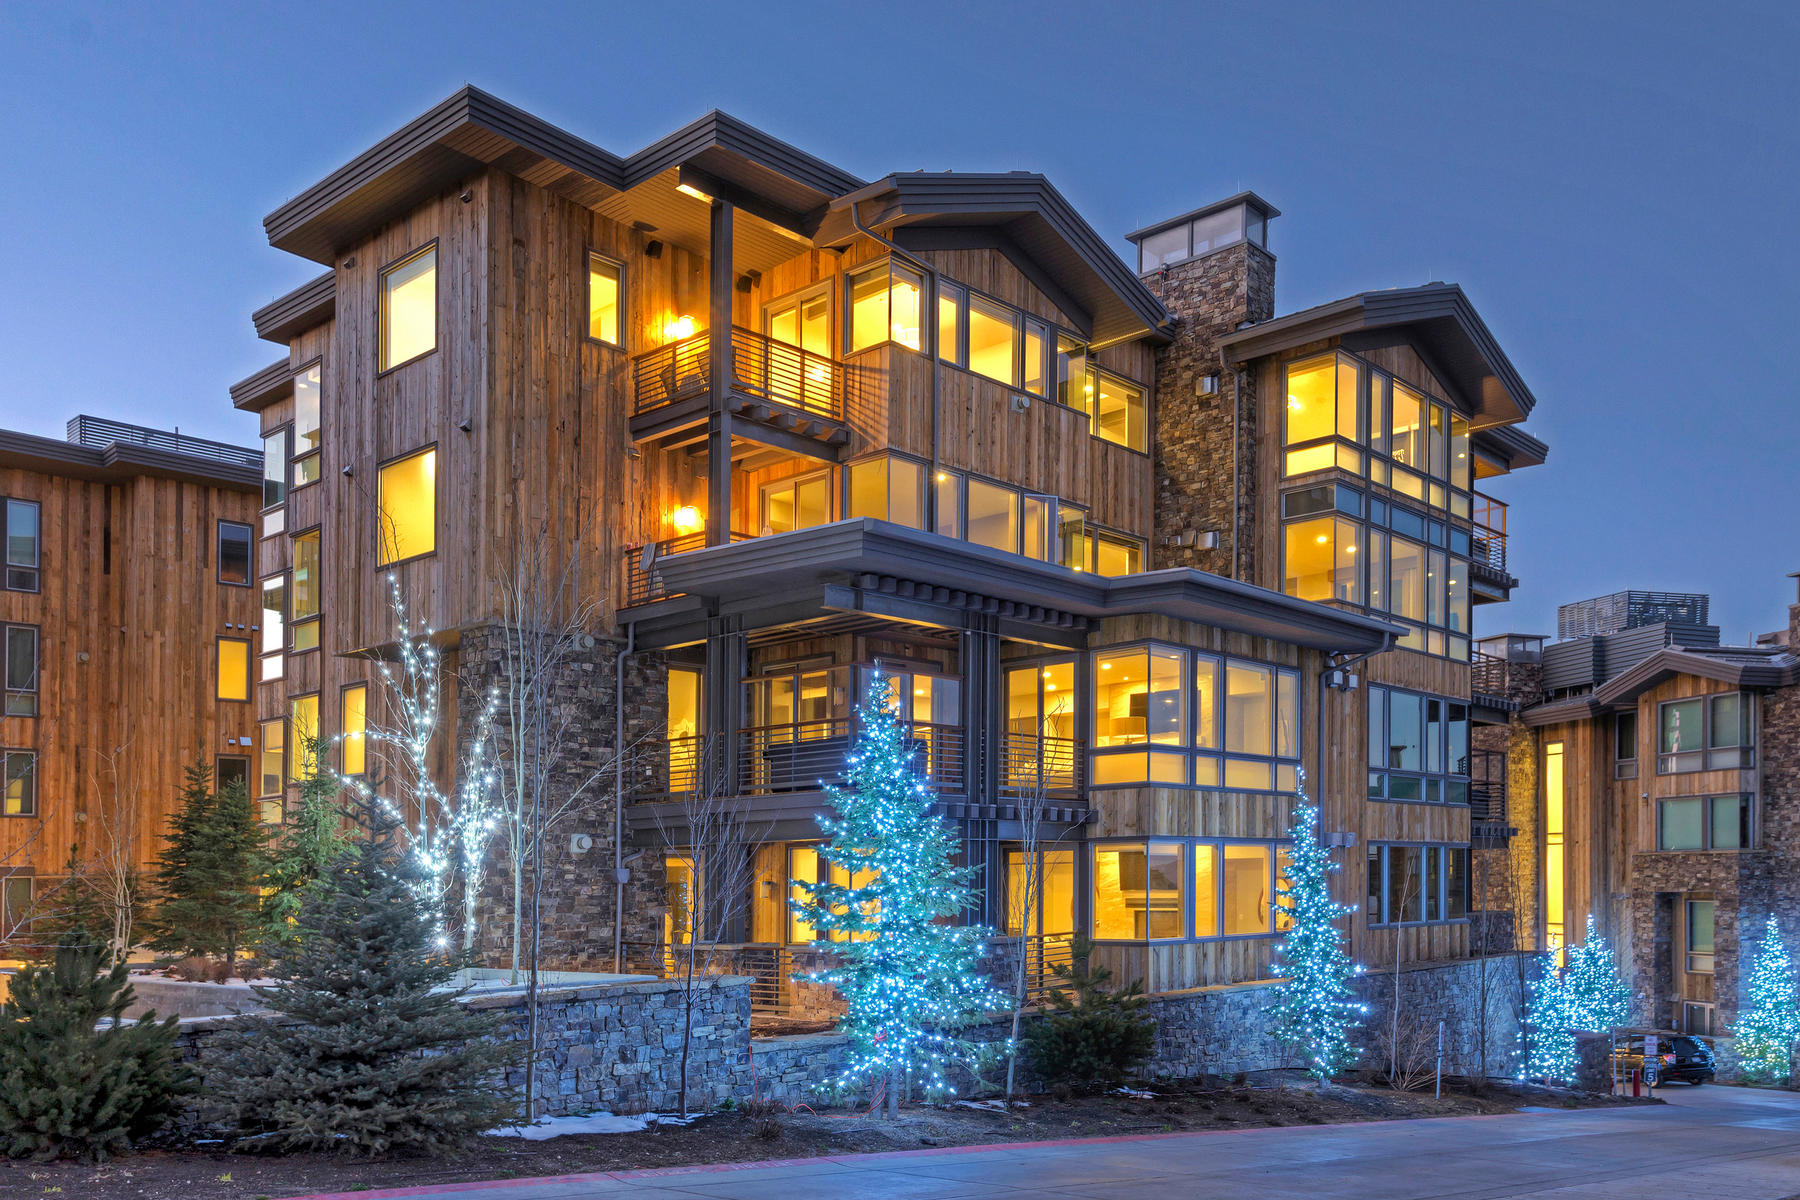 Condominium for Sale at Brand New Turn-Key Ski-in/Ski-out Penthouse at Deer Valley 7101 Stein Cir #621 Park City, Utah 84060 United States